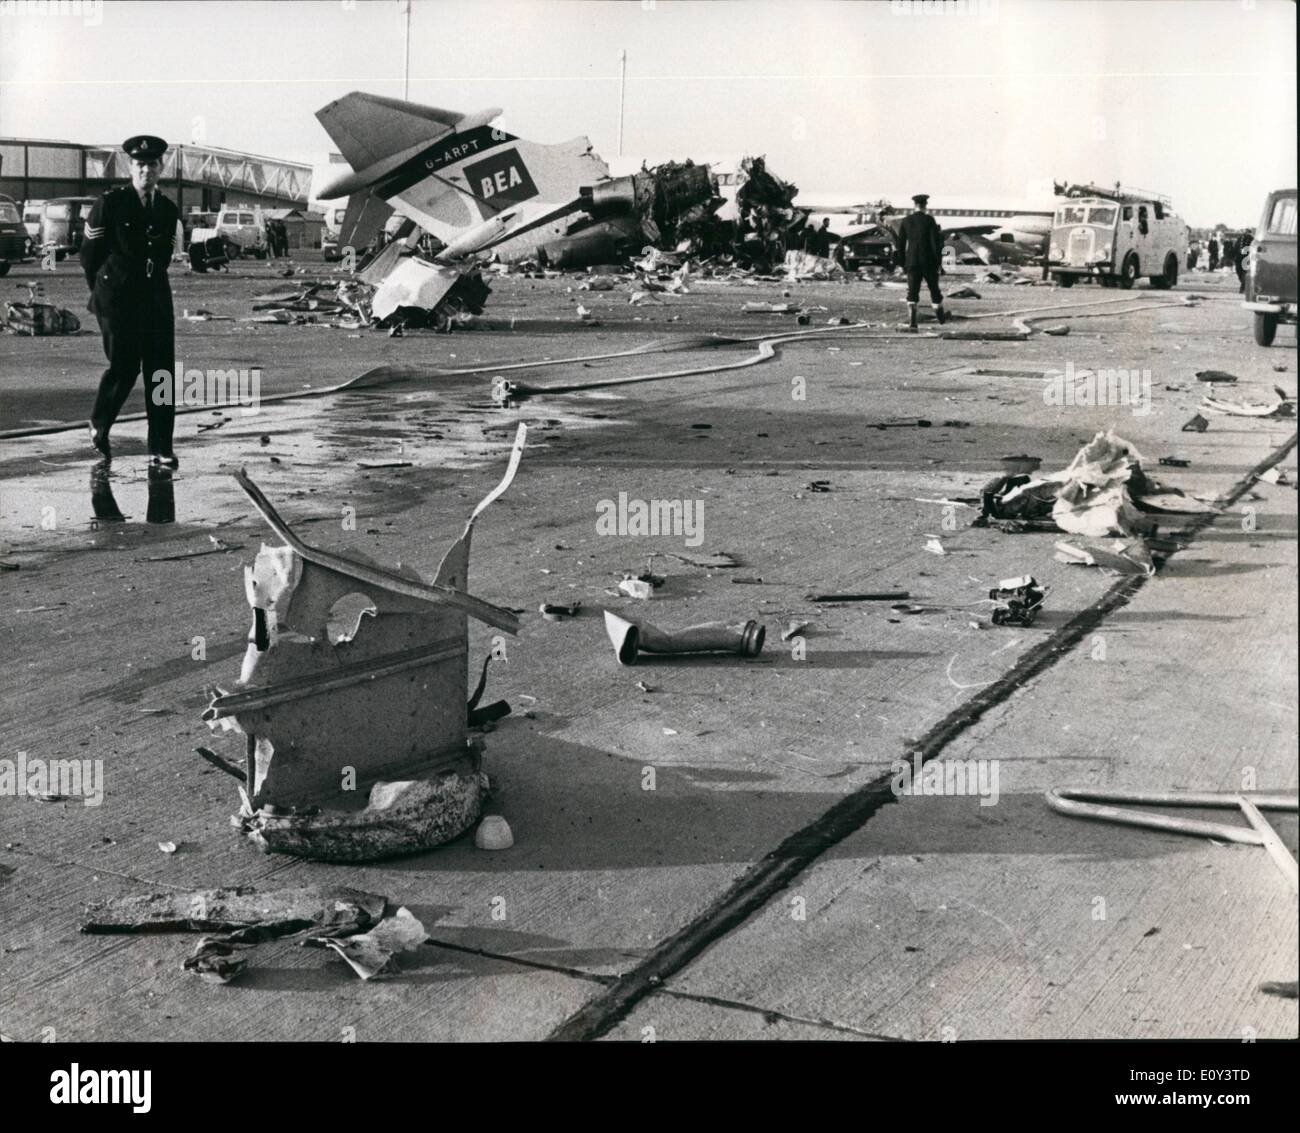 Jul. 07, 1968 - Six People were killed and six injured as an Elizabethan fceighter of BKS - the independent airlines, crashed on landing at Heathrow Airport yesterday, struck three parked BEA airliners and smashed into the wall of a passenger building under construction, the crashed plane was returning eight broad mares and foals from Deauville, France, to stud farms in the Sout of England. The plane's grew of three and three grooms on board died. all the horese were killed or had to be destroyed - Stock Image